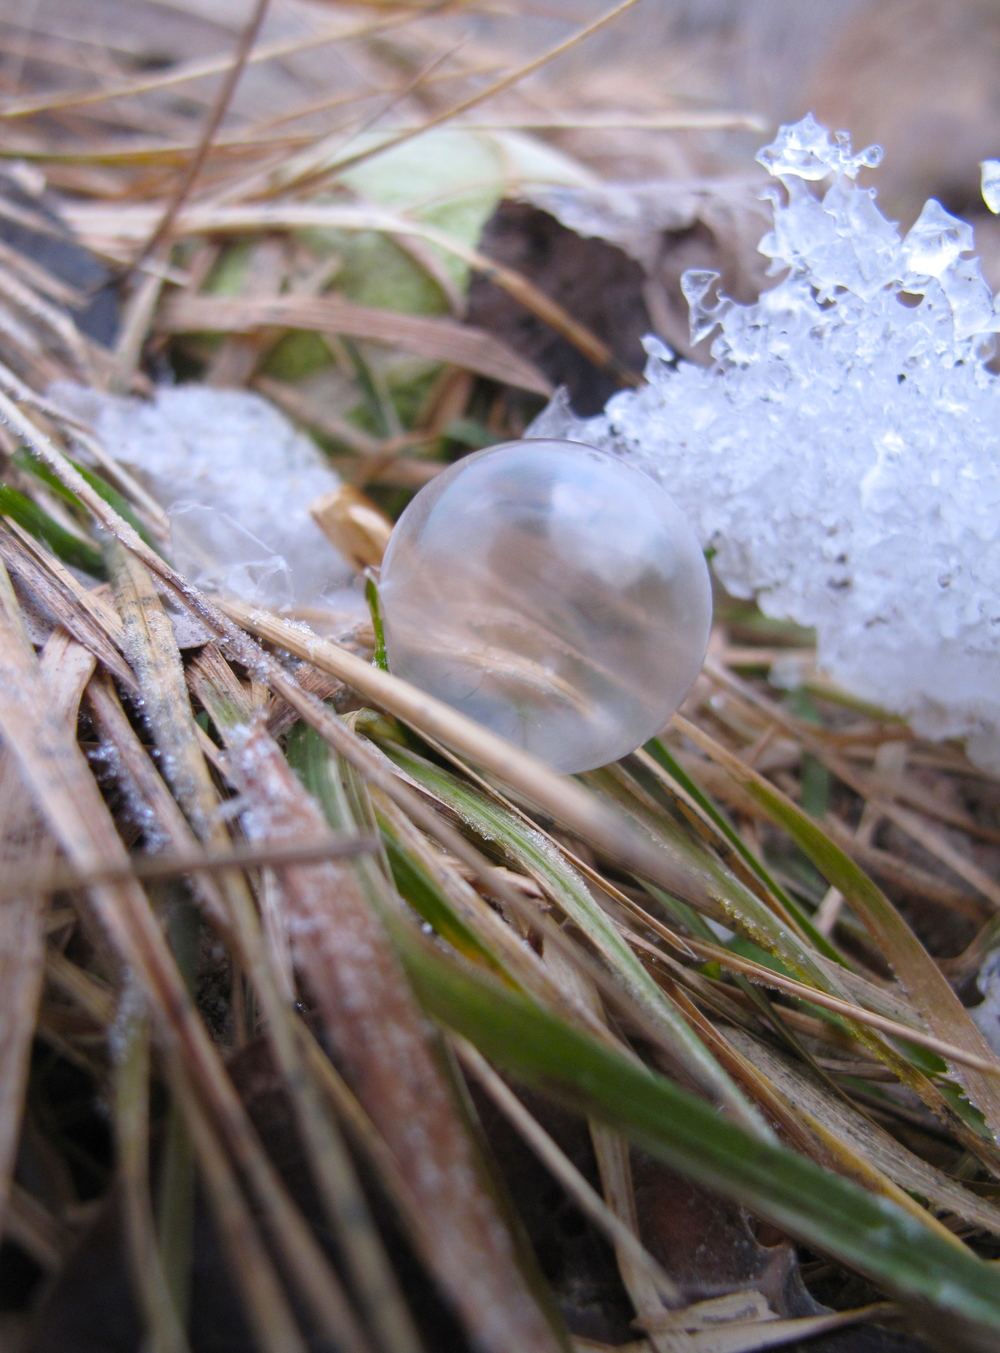 Bubble freezing on stalks of hay in the early morning.